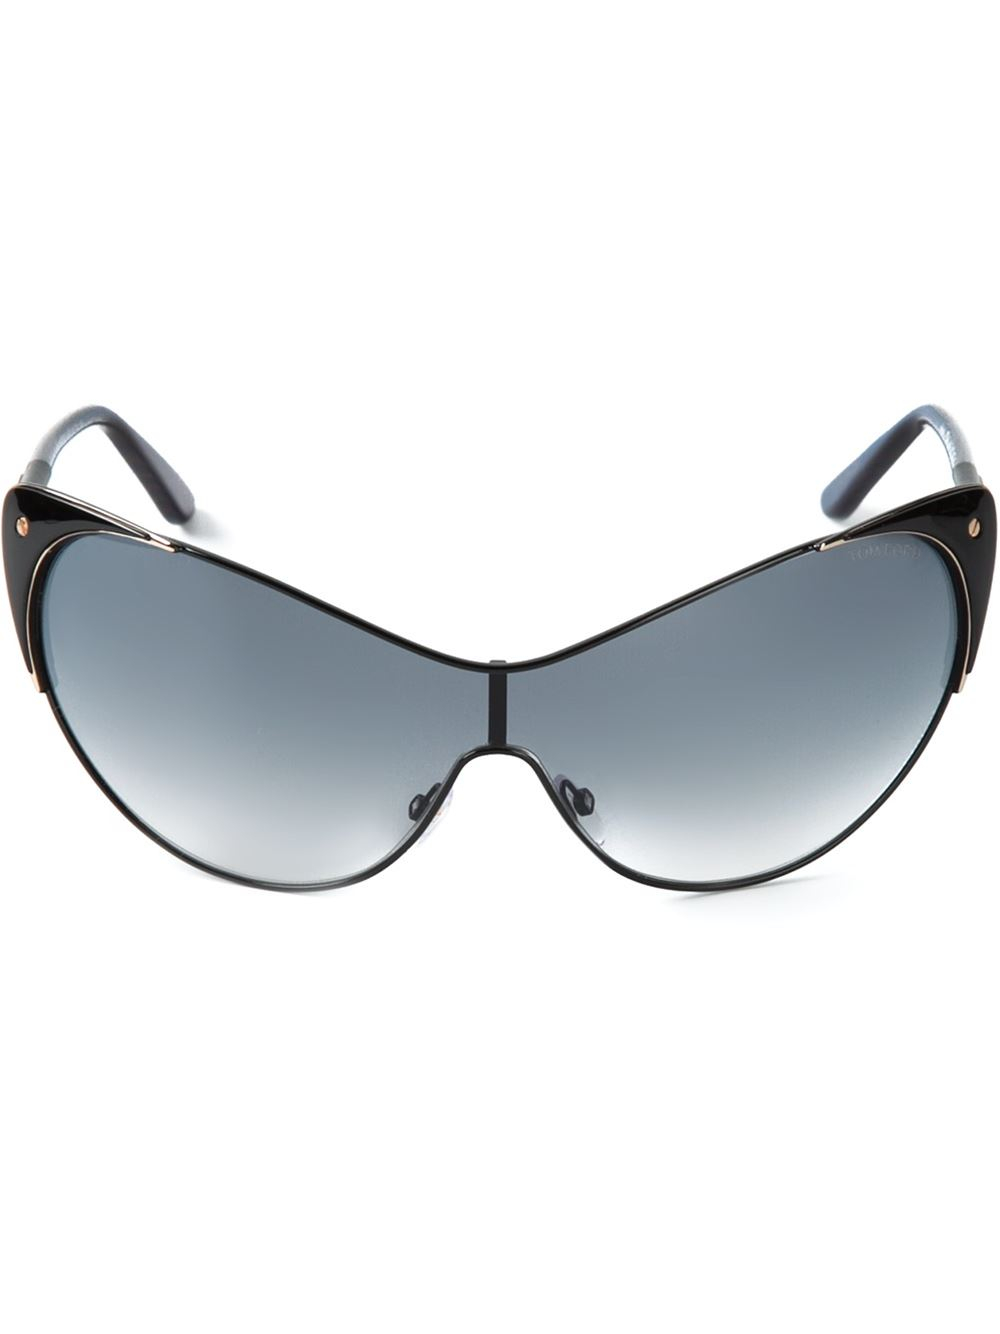 tom ford 39 nastasya 39 cat eye sunglasses in black lyst. Cars Review. Best American Auto & Cars Review